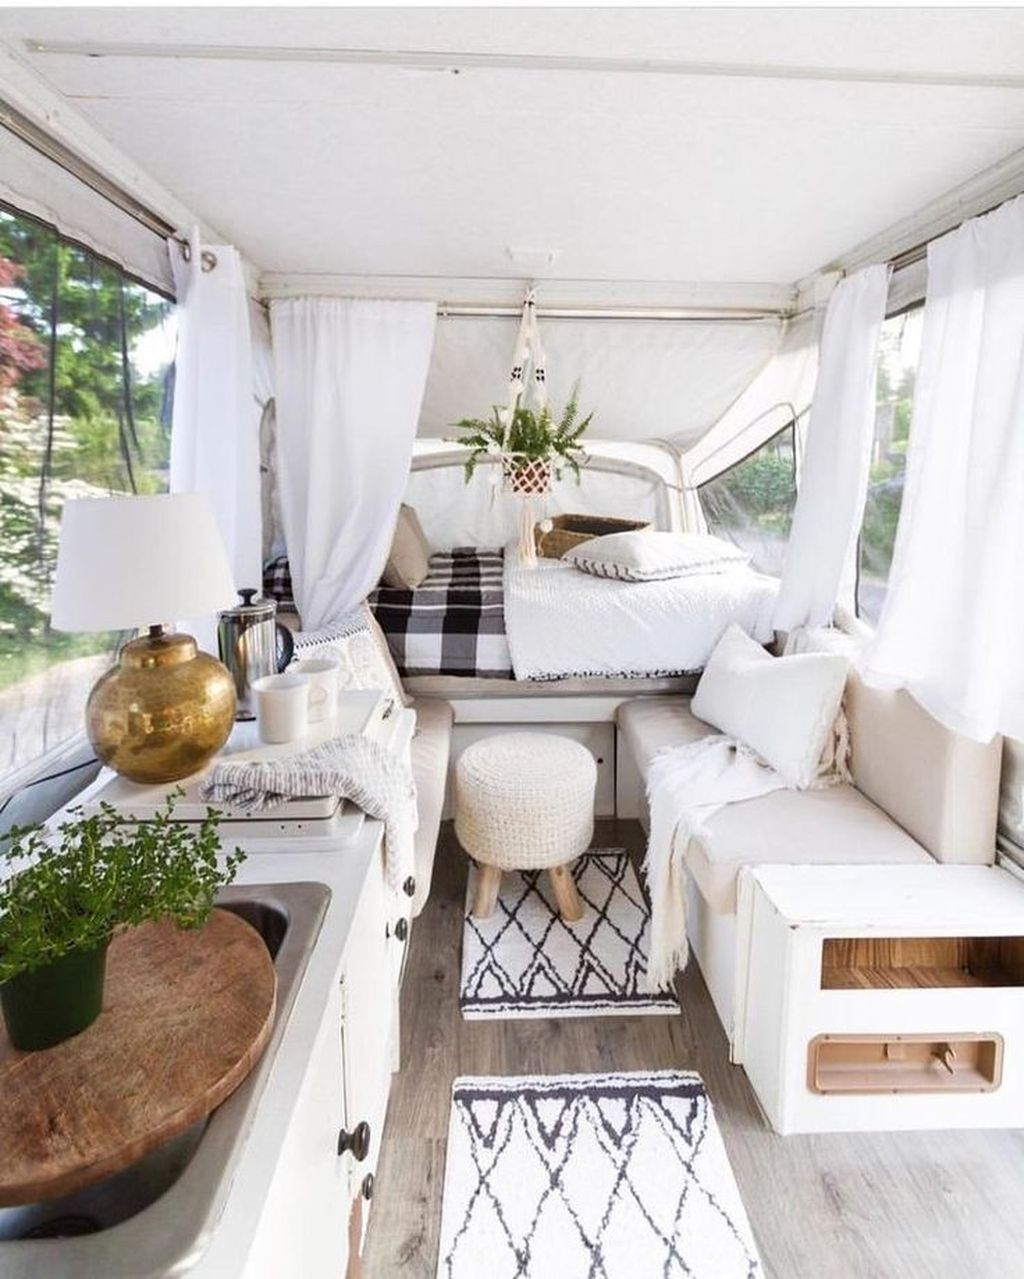 Brilliant Organize Ideas For First Rv Living Design To Try Asap37